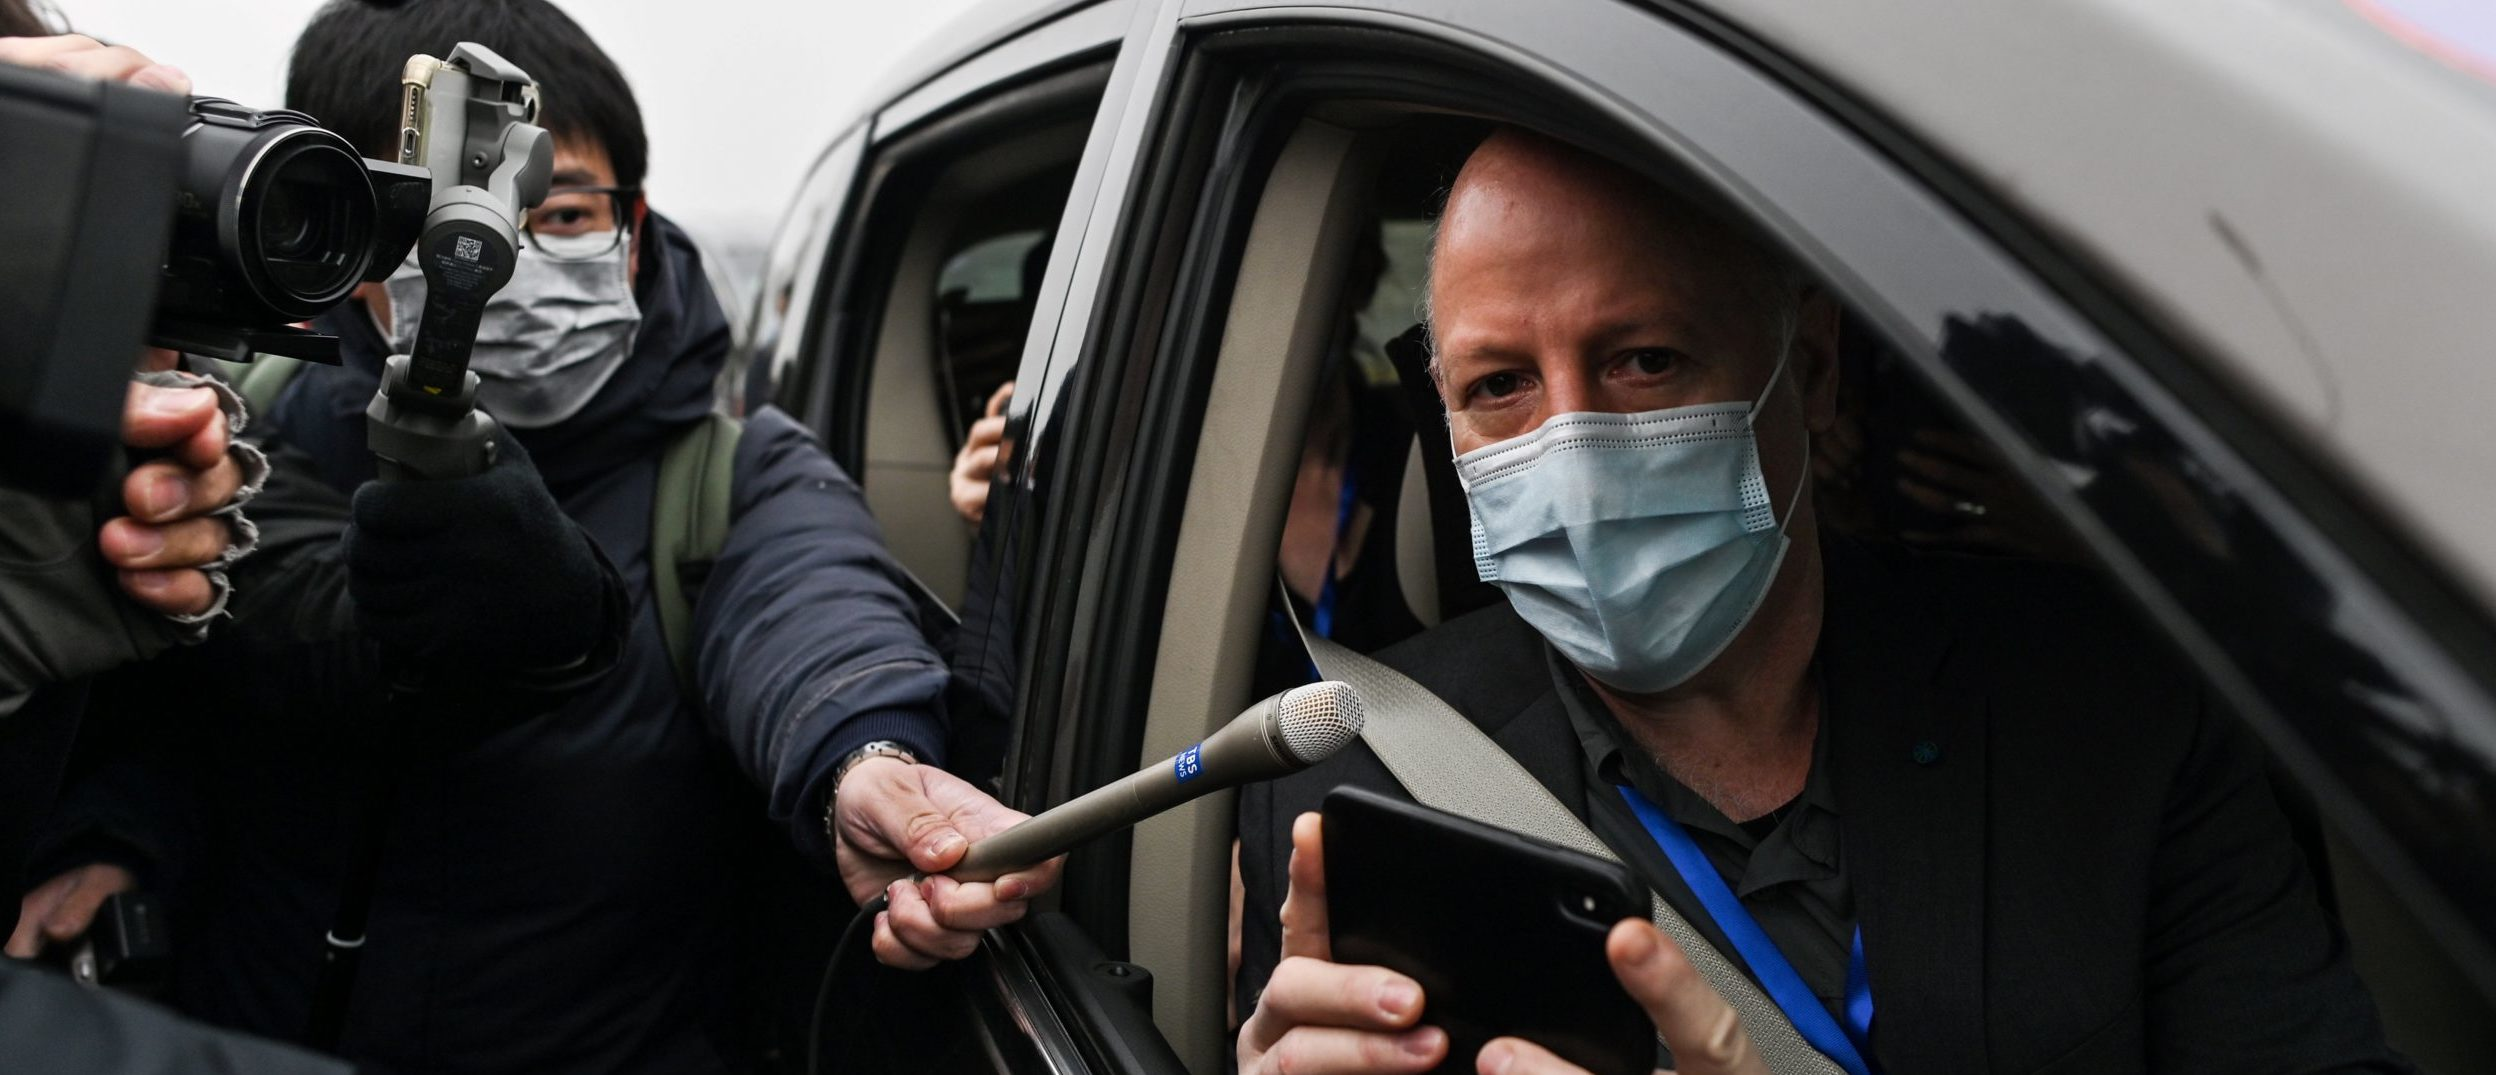 Peter Daszak, a member of the World Health Organization (WHO) team investigating the origins of the COVID-19 coronavirus, speaks to media upon arriving with other WHO members to the Wuhan Institute of Virology in Wuhan in China's central Hubei province on February 3, 2021. (HECTOR RETAMAL/AFP via Getty Images)